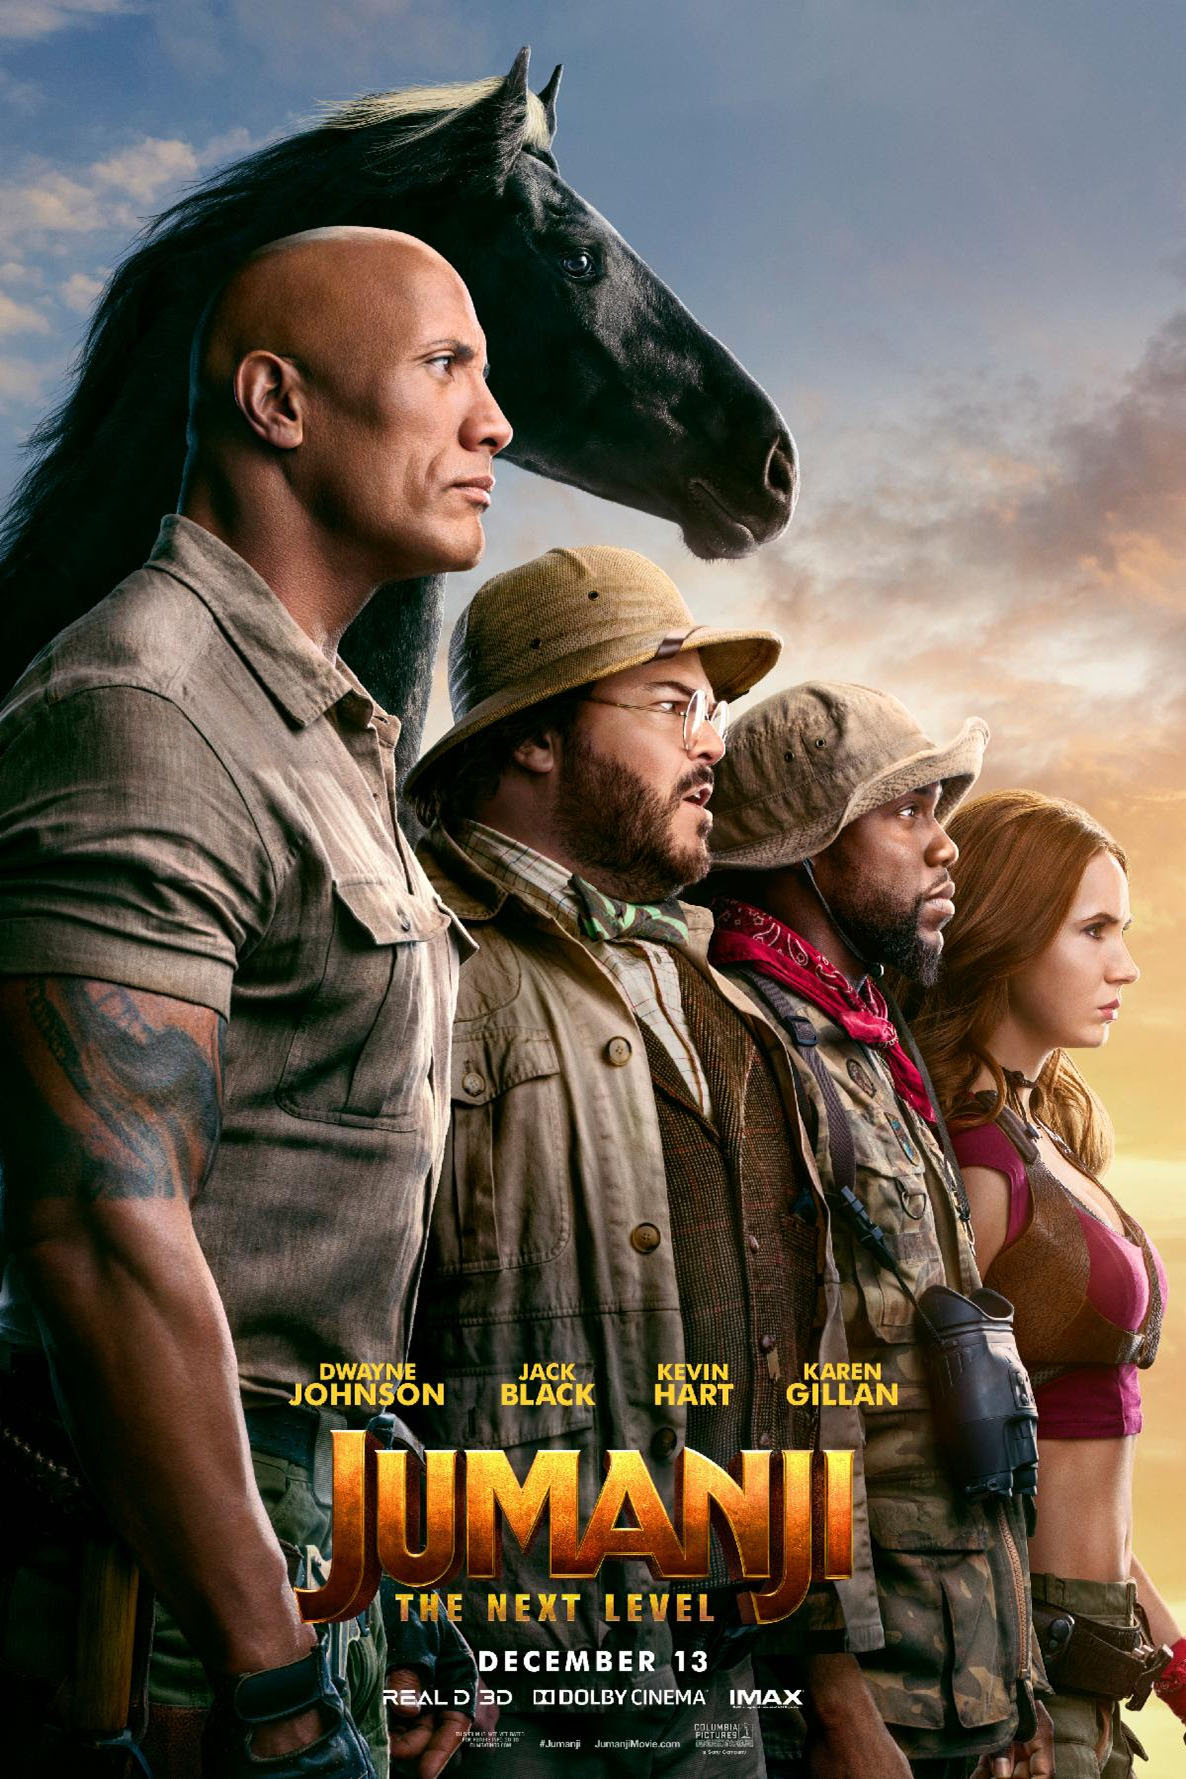 Poster for Jumanji: The Next Level